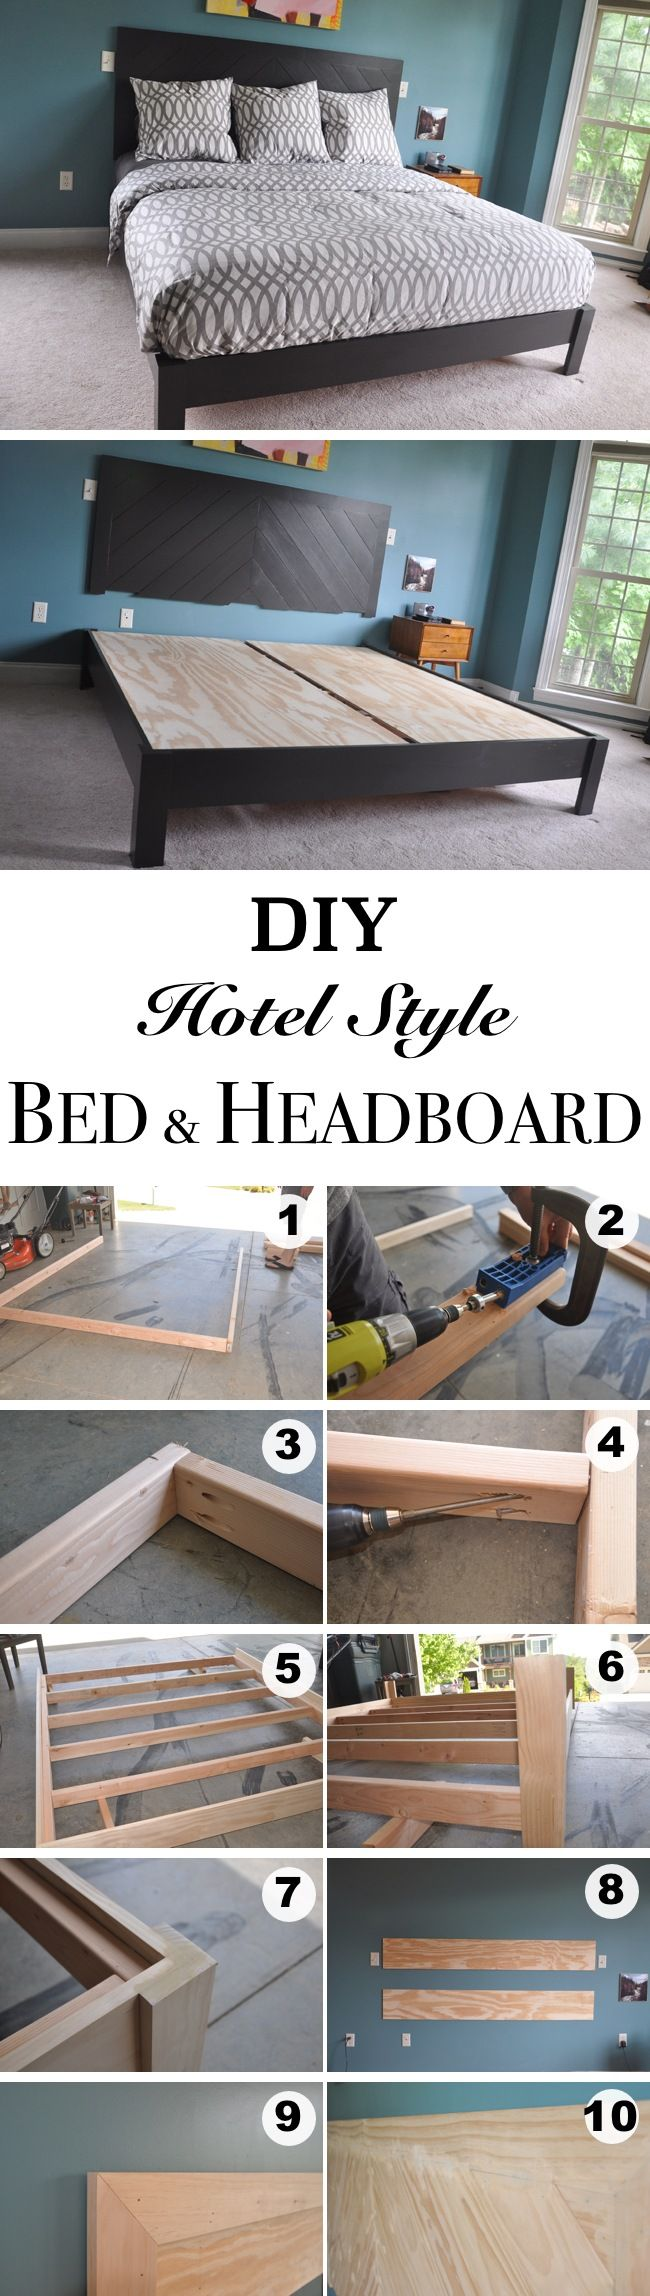 Diy Bed Headboard Ideas best 10+ bed frame and headboard ideas on pinterest | diy bed